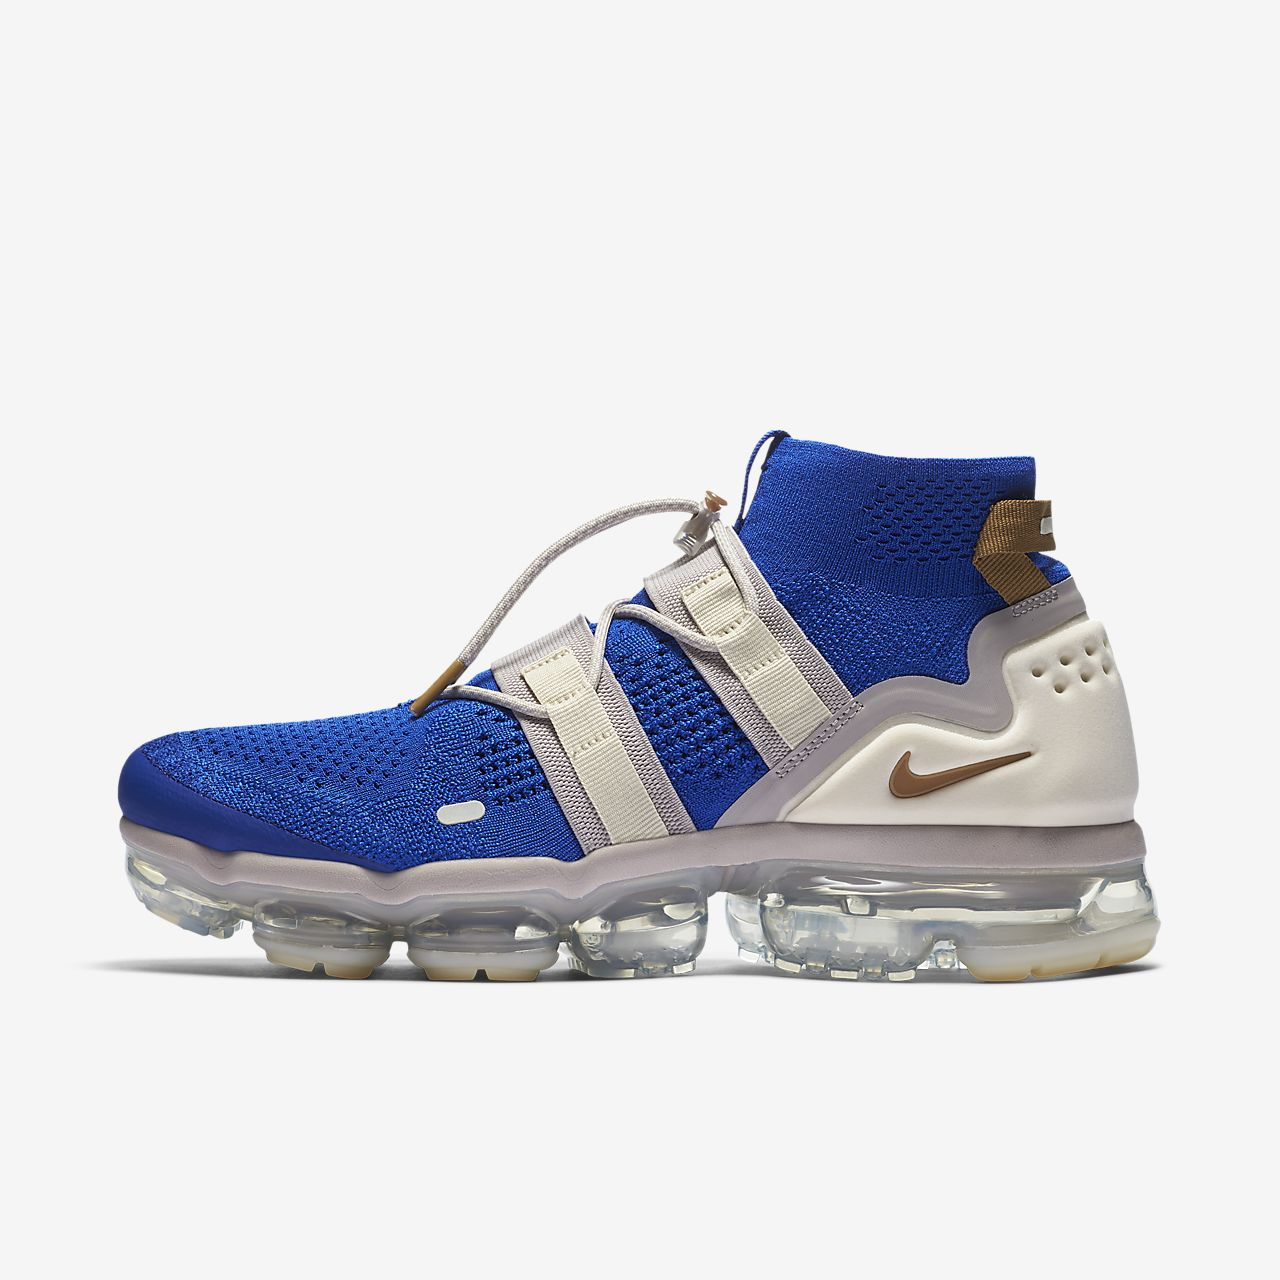 on sale 2d1f1 47aec ... Chaussure Nike Air VaporMax Flyknit Utility